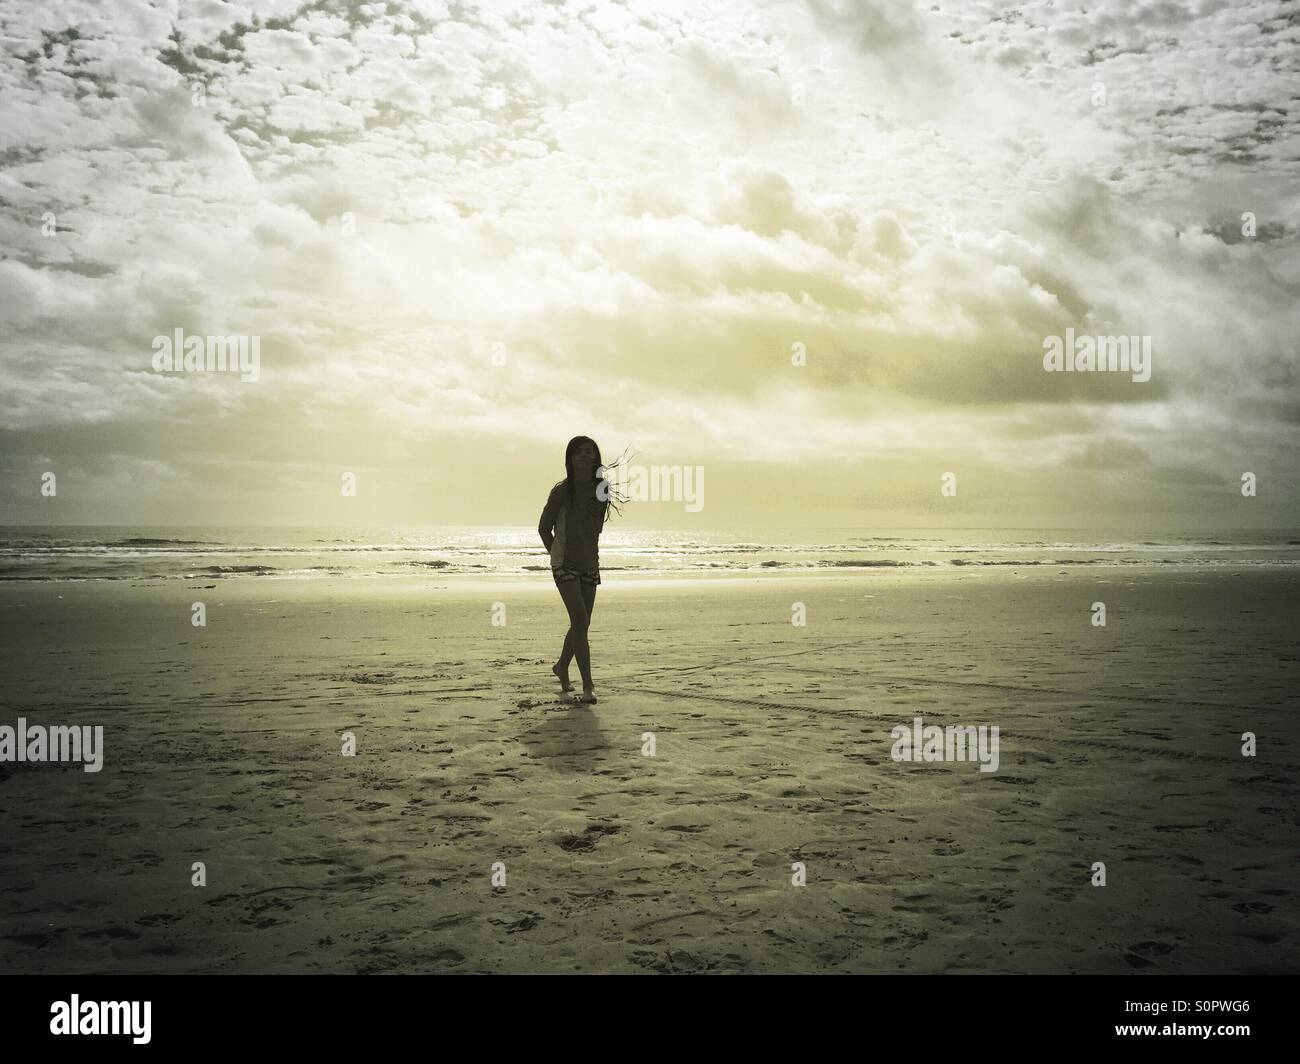 A girl dances on the beach under a stormy sky. - Stock Image